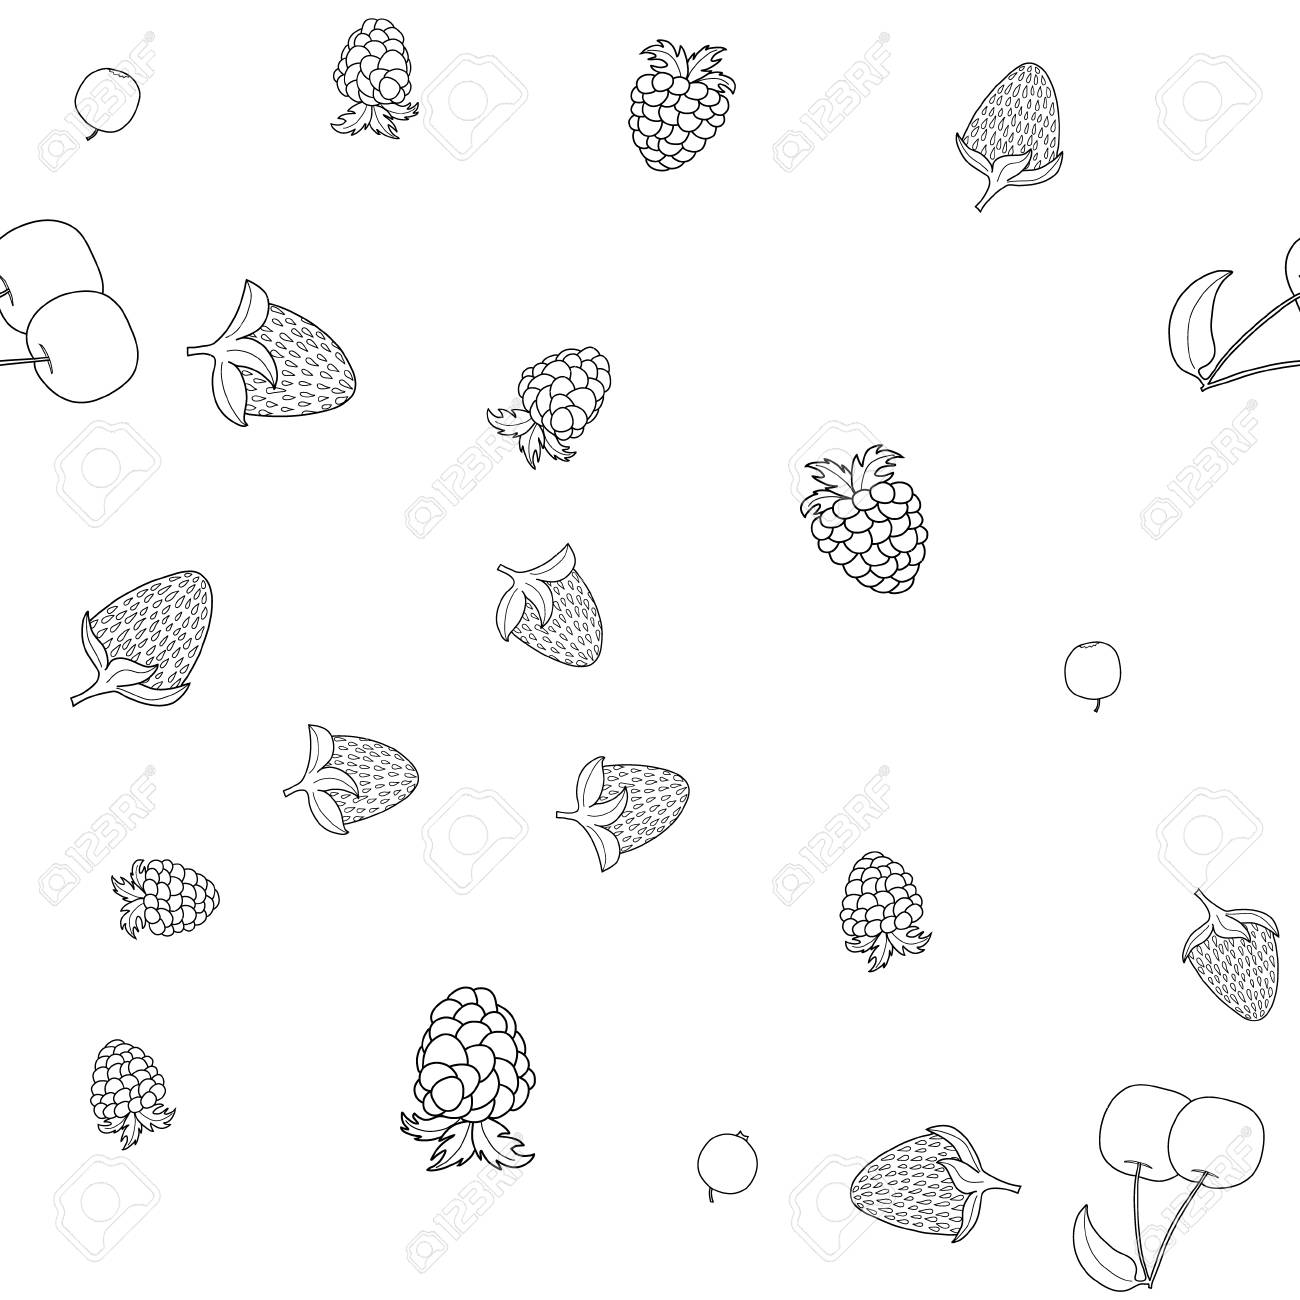 abstract vector doodle berry seamless pattern - 104459577